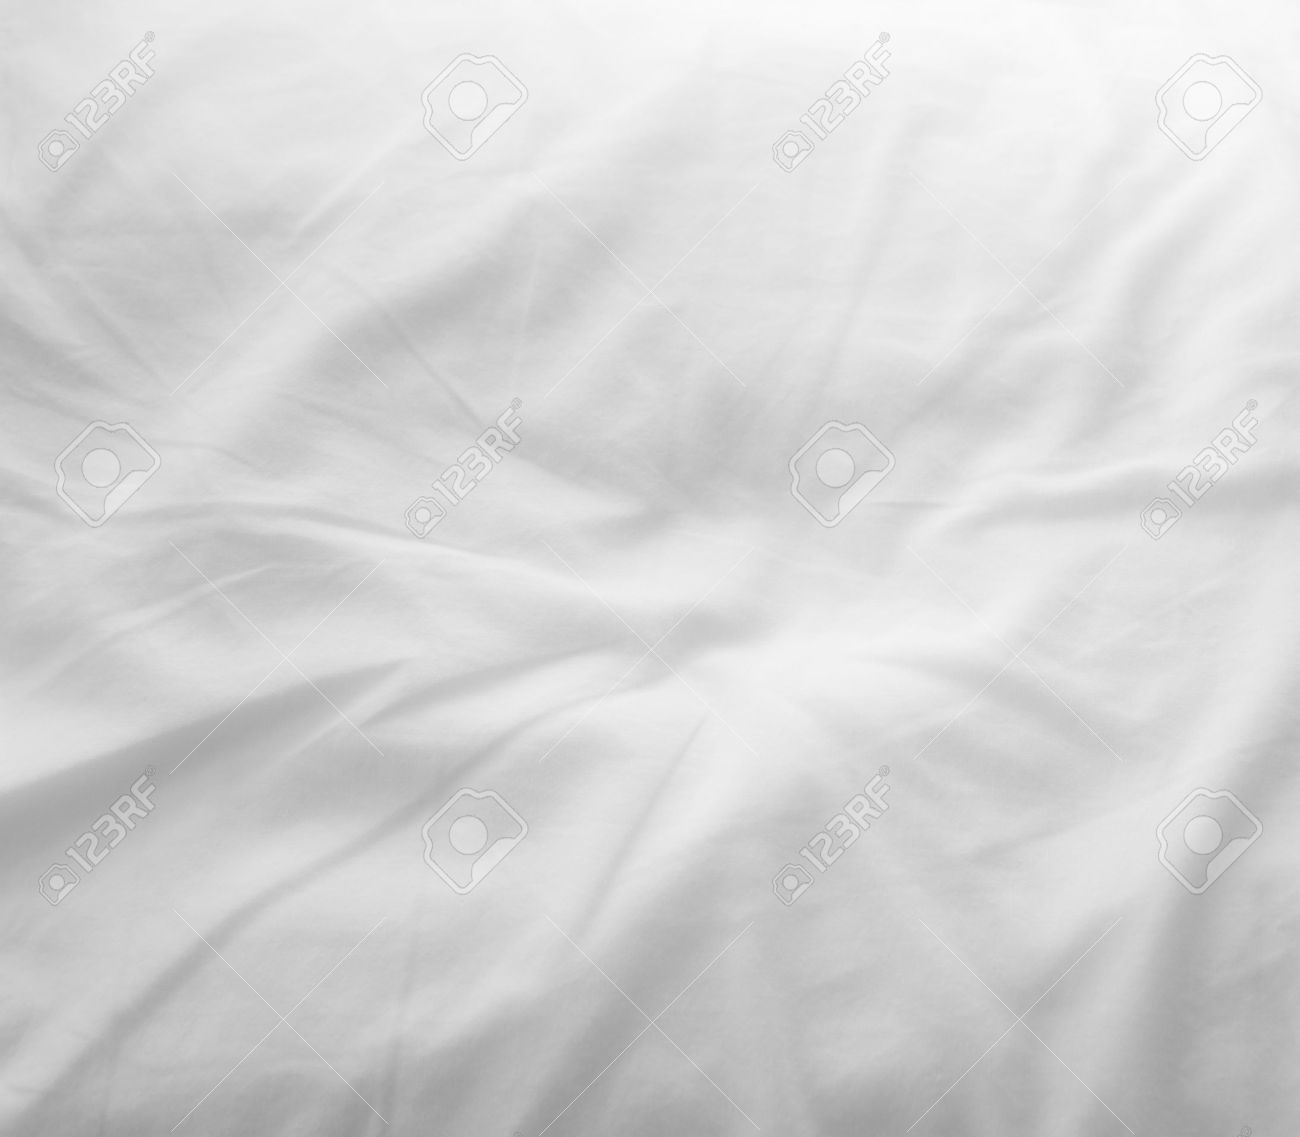 White bed sheet background - Soft White Bed Sheets Background Stock Photo 36495610